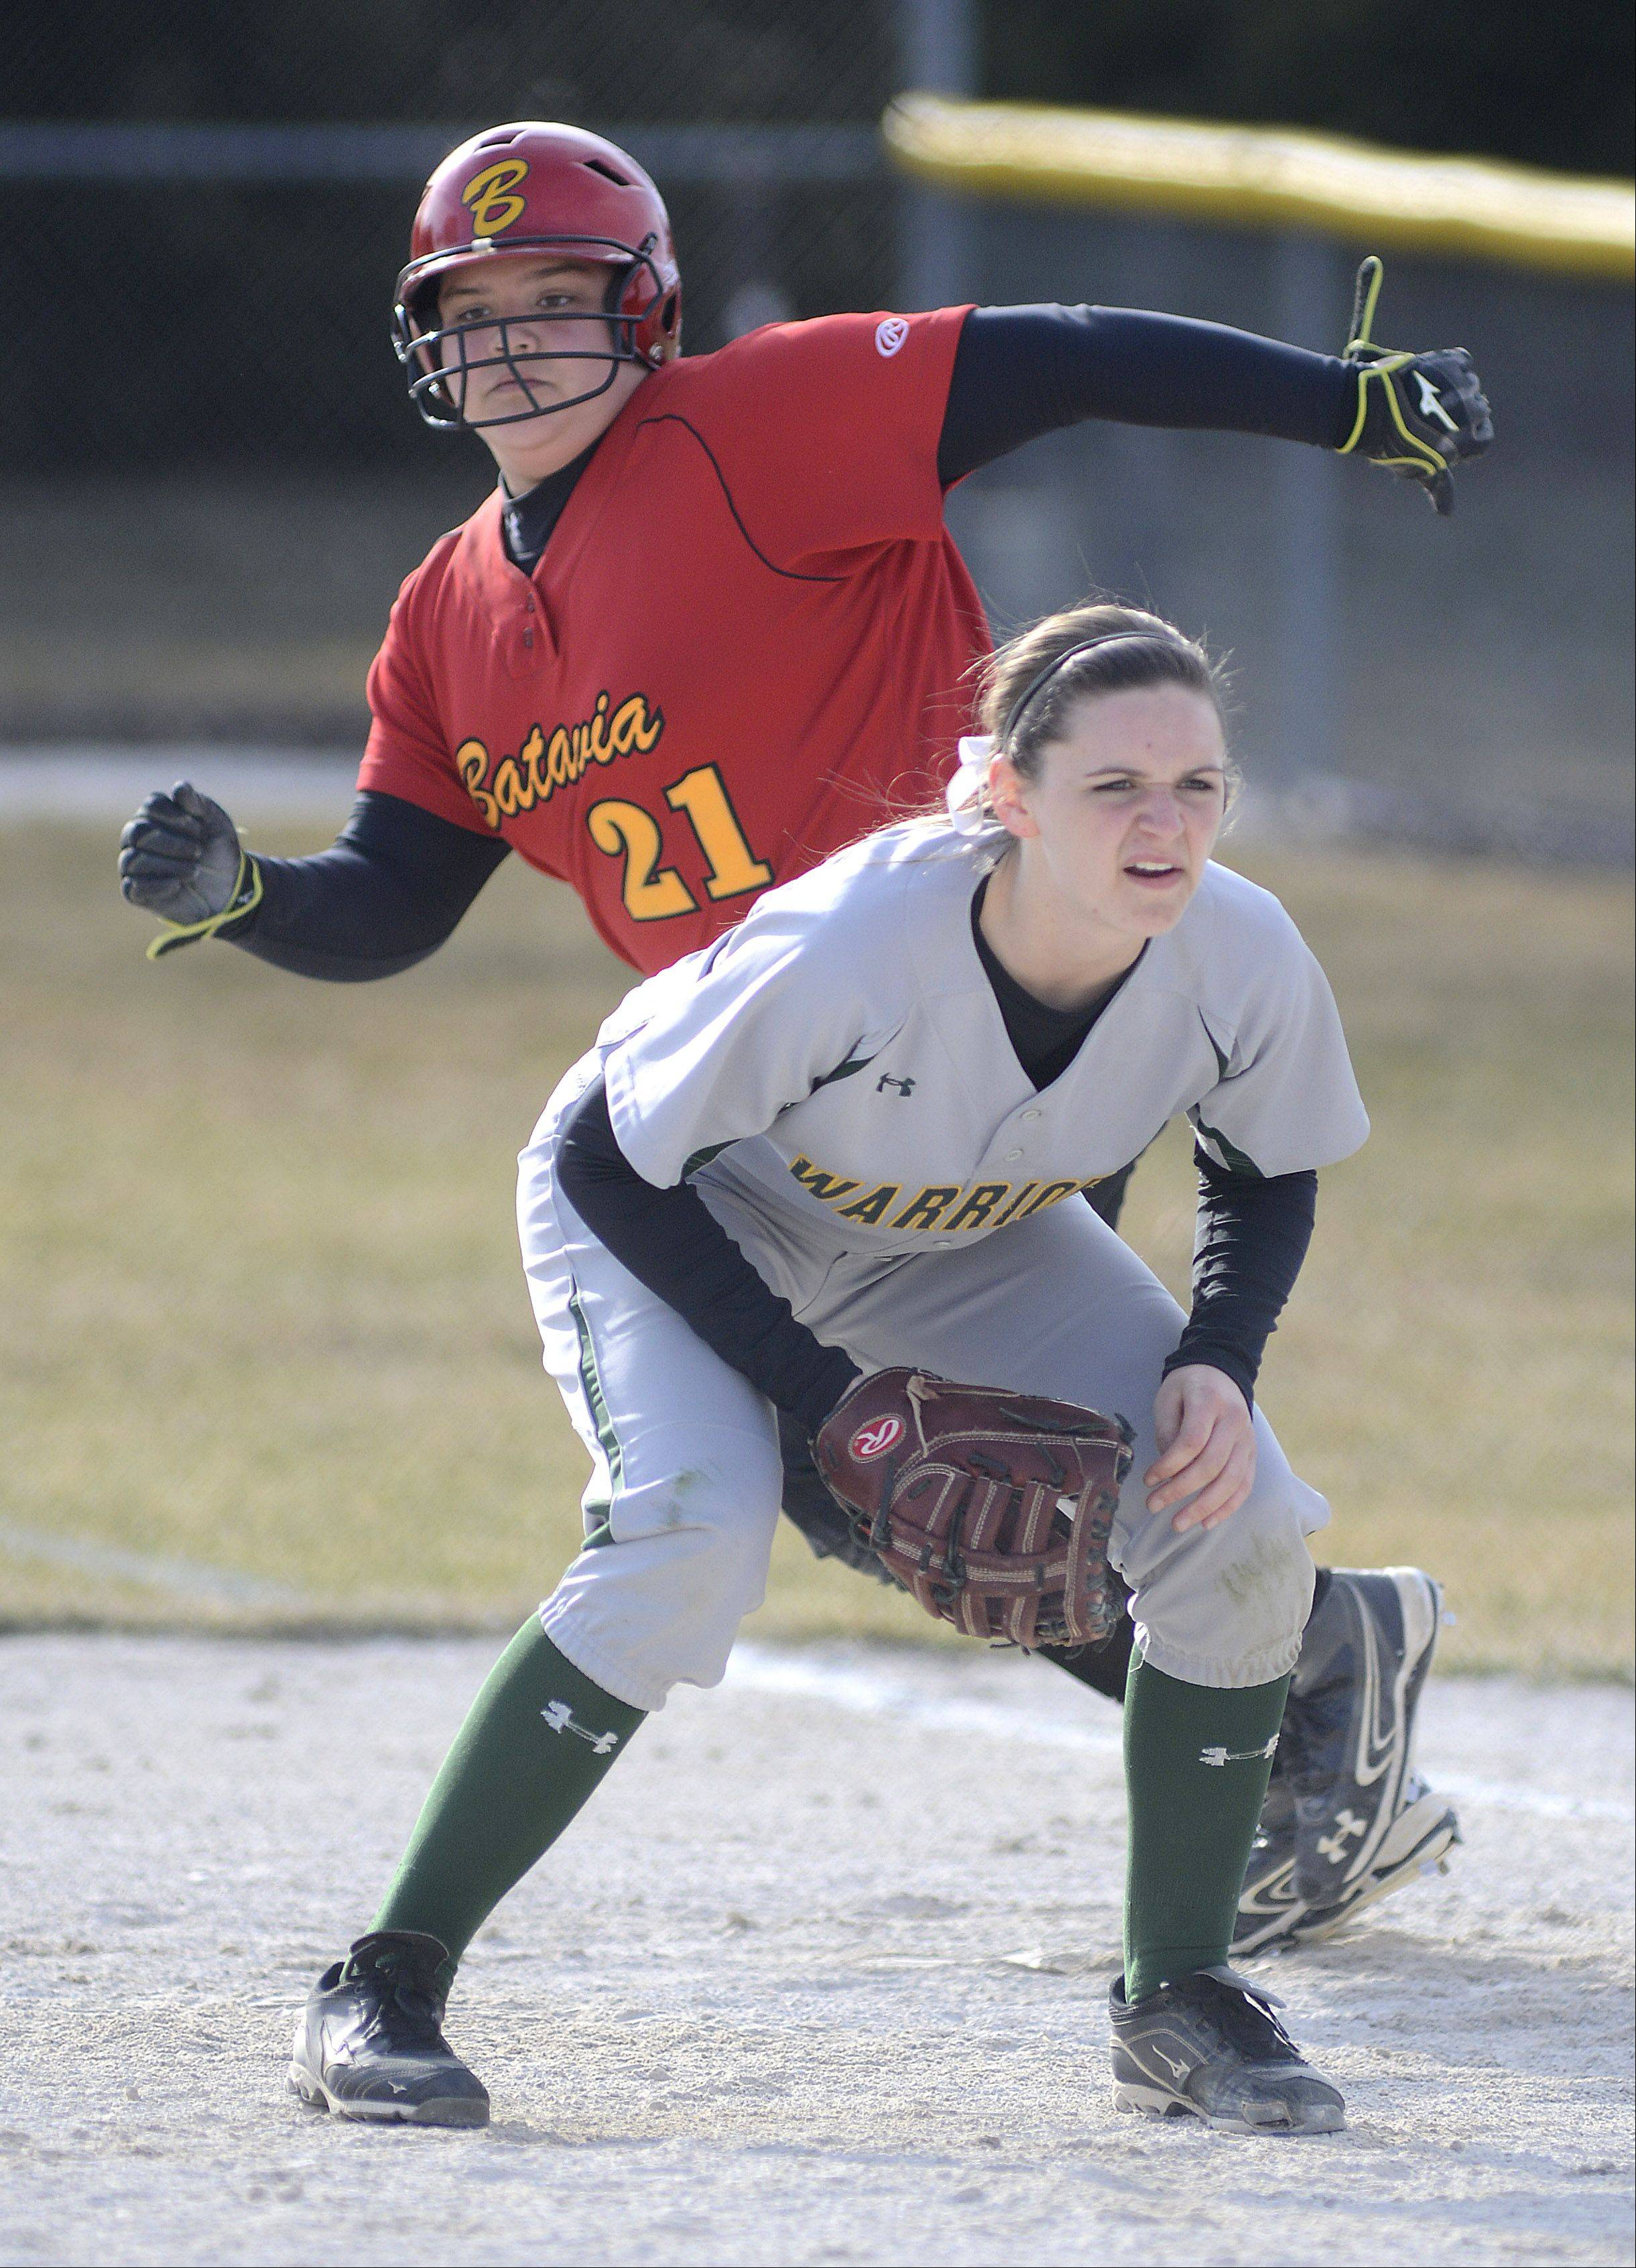 Batavia's Selena Kweder preps to steal second base while leaving first and Waubonsie Valley's Jordan Kurth in the second inning on Friday, April 5.